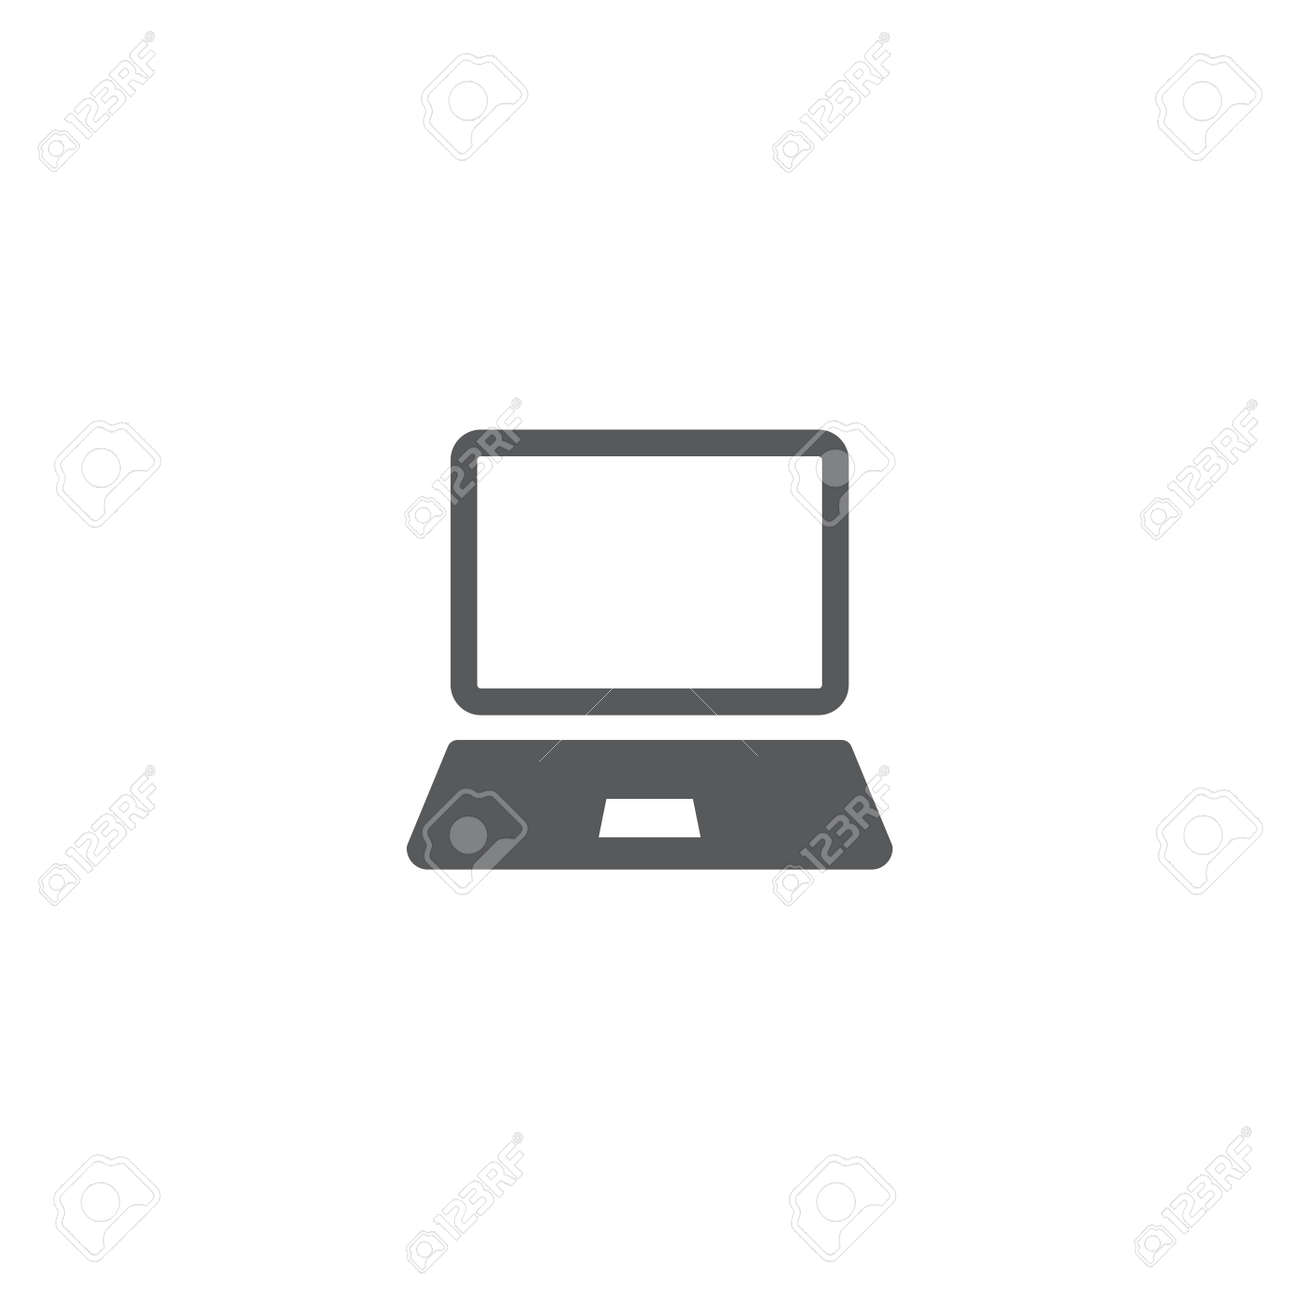 Laptop Icon in trendy flat style isolated on white background. - 156904572